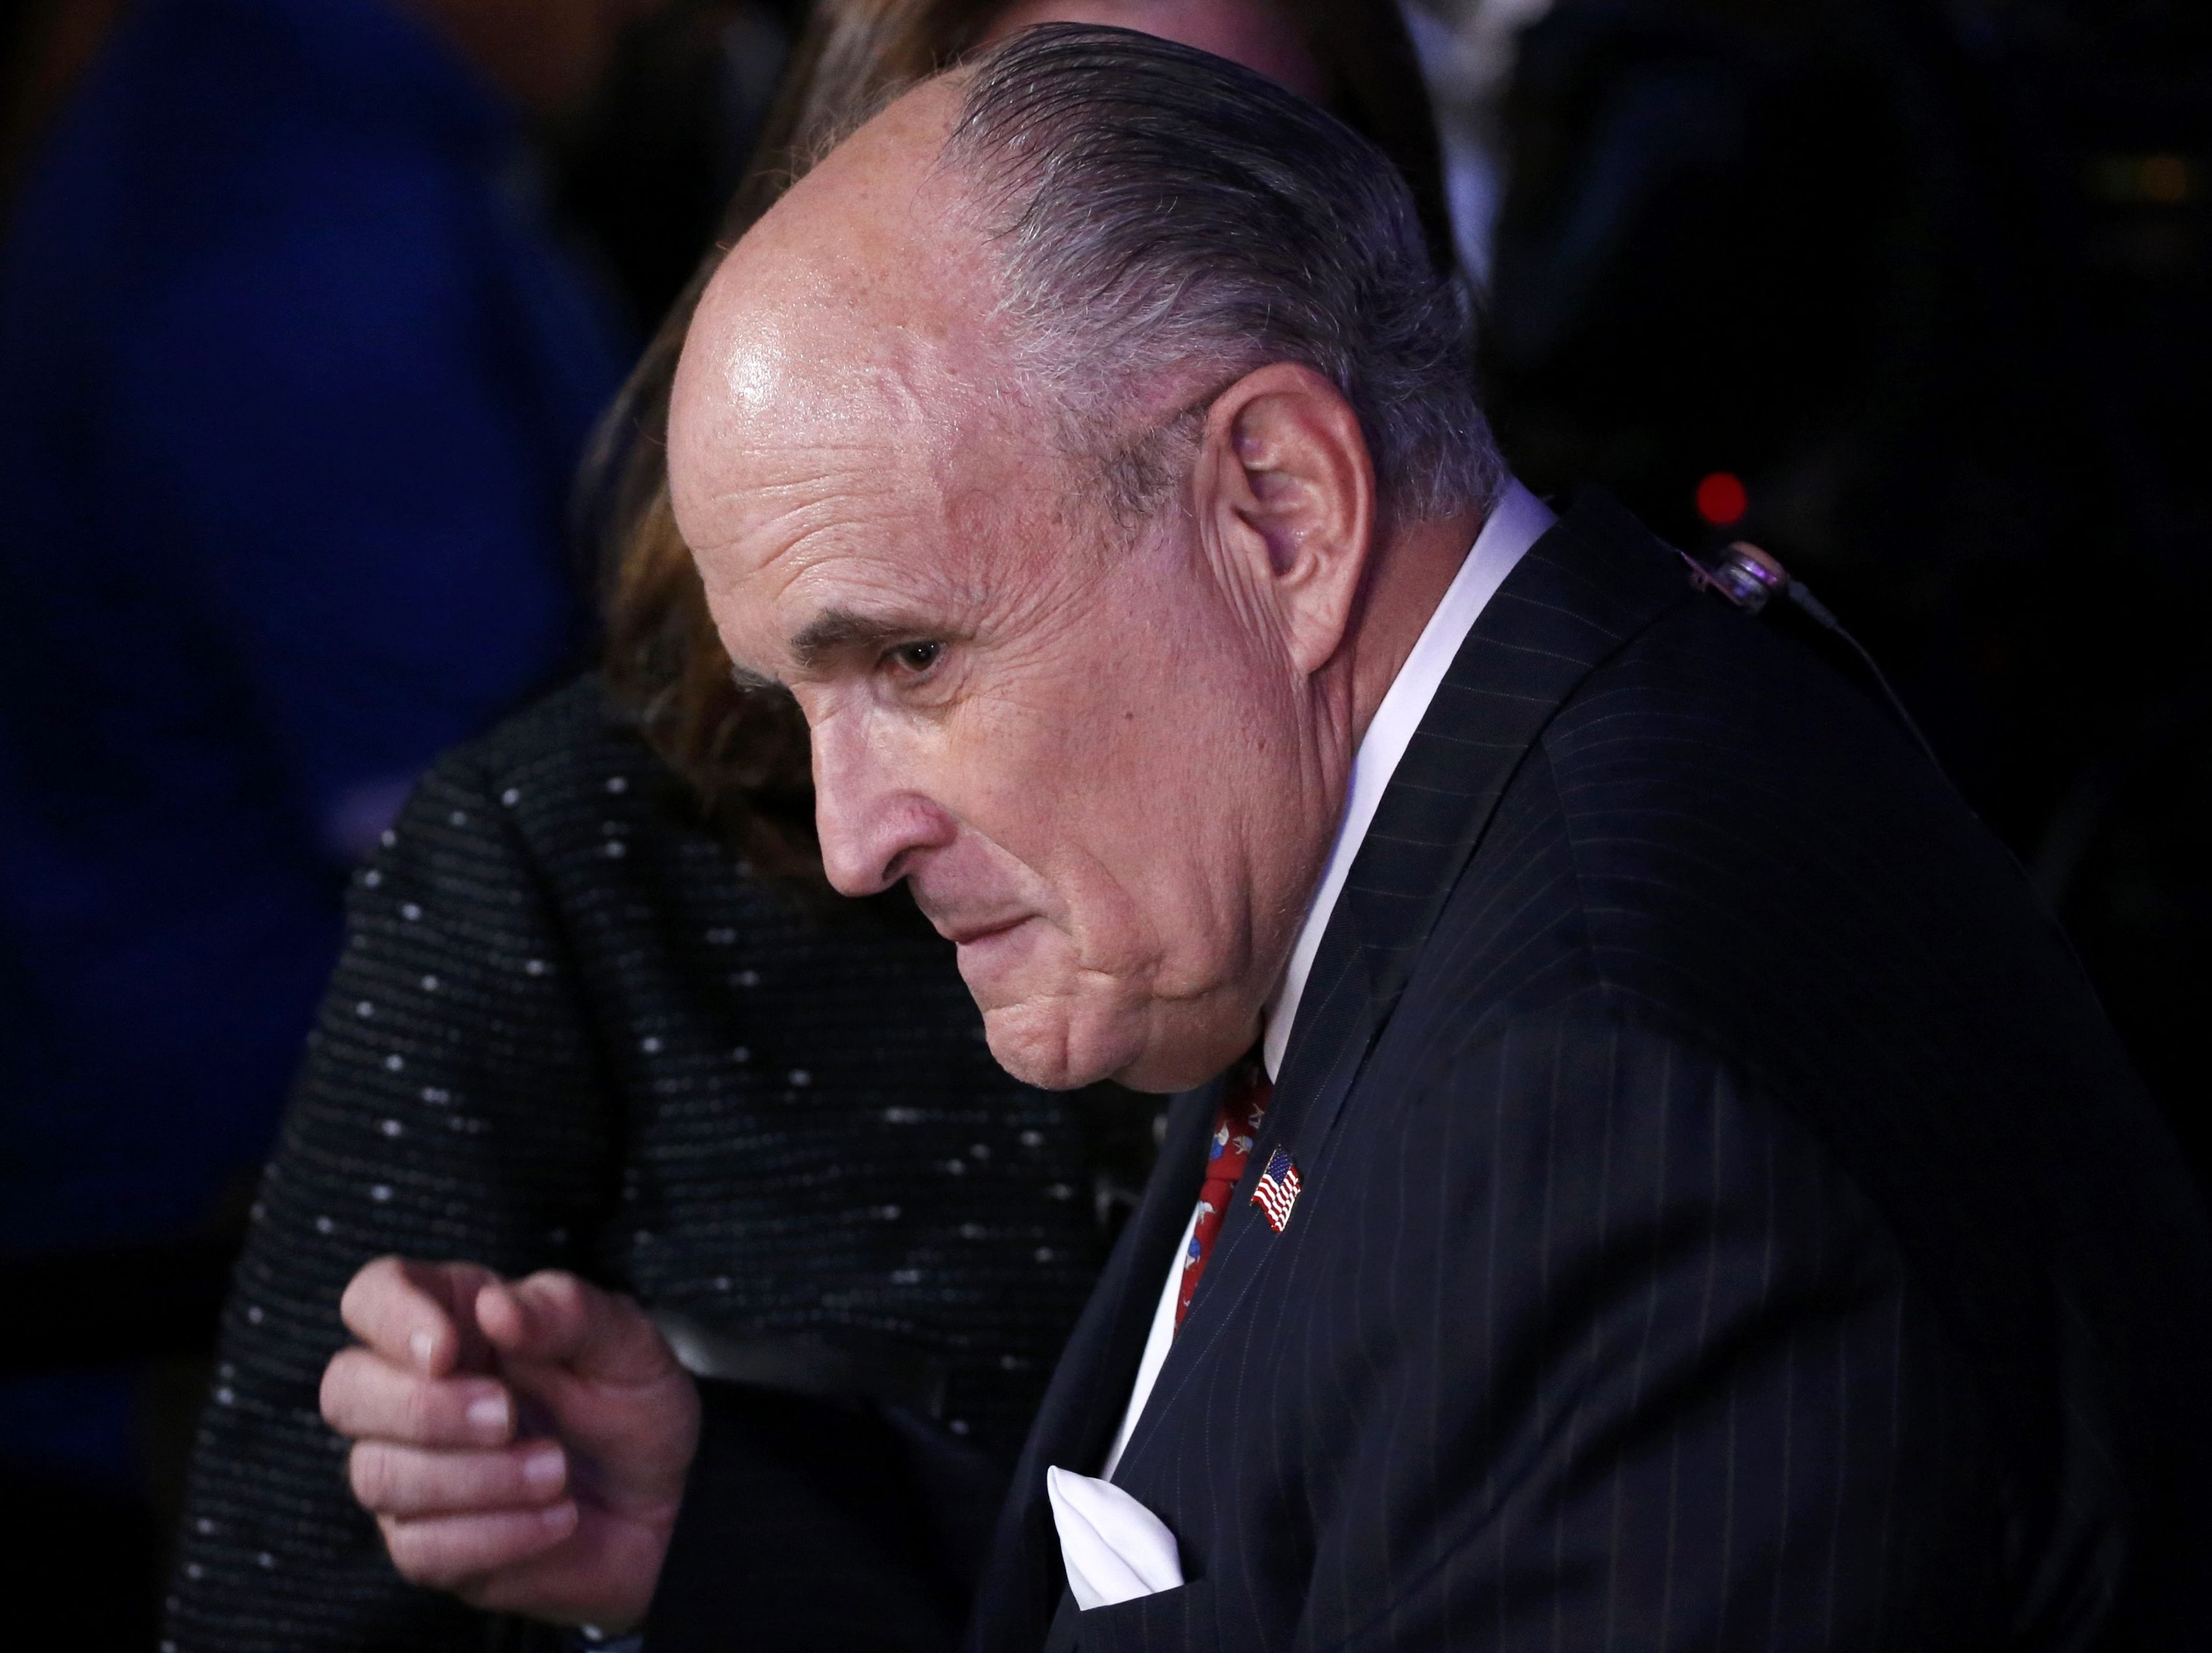 Former New York City Mayor Rudy Giuliani finishes a television interview at Republican U.S. presidential nominee Donald Trump's election night rally in Manhattan, New York, U.S., November 8, 2016